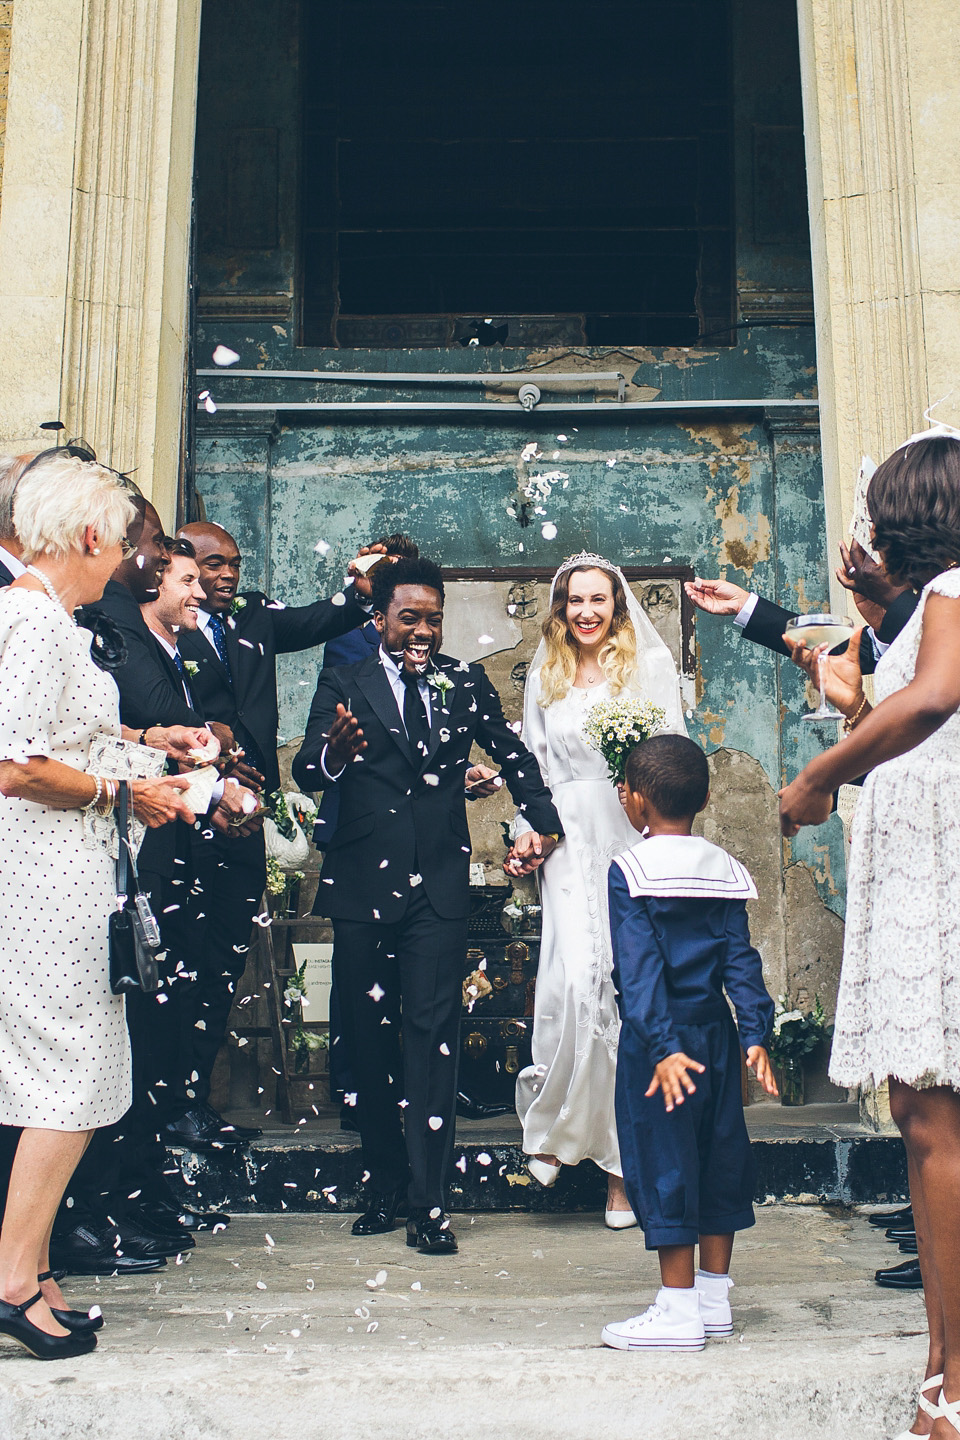 A Baz Luhrmann and 1930's Decayed Decadence Inspired Wedding